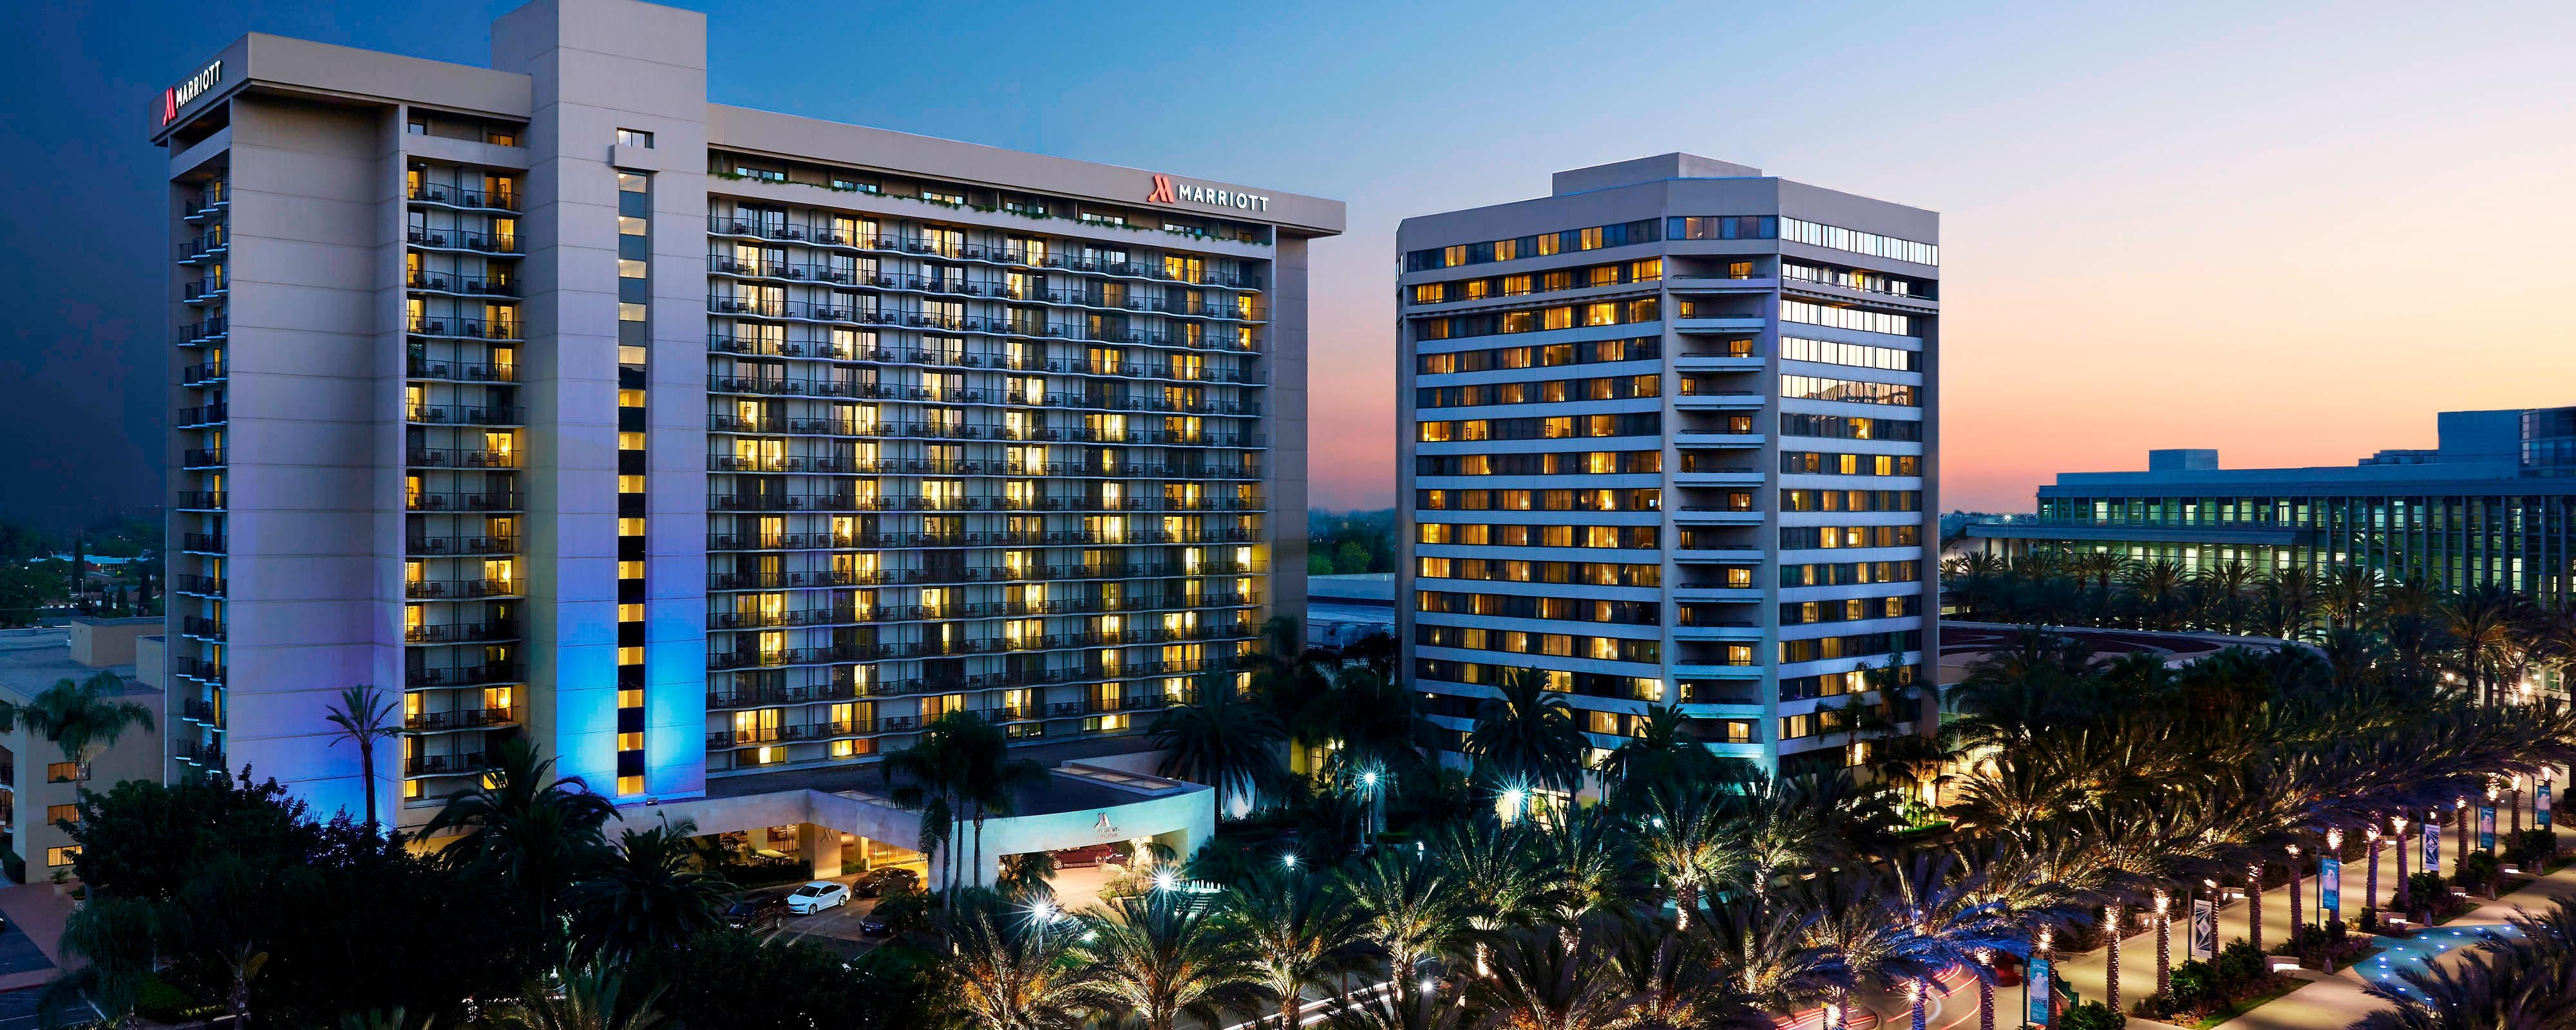 Hotels In Anaheim Near Disneyland Anaheim Marriott